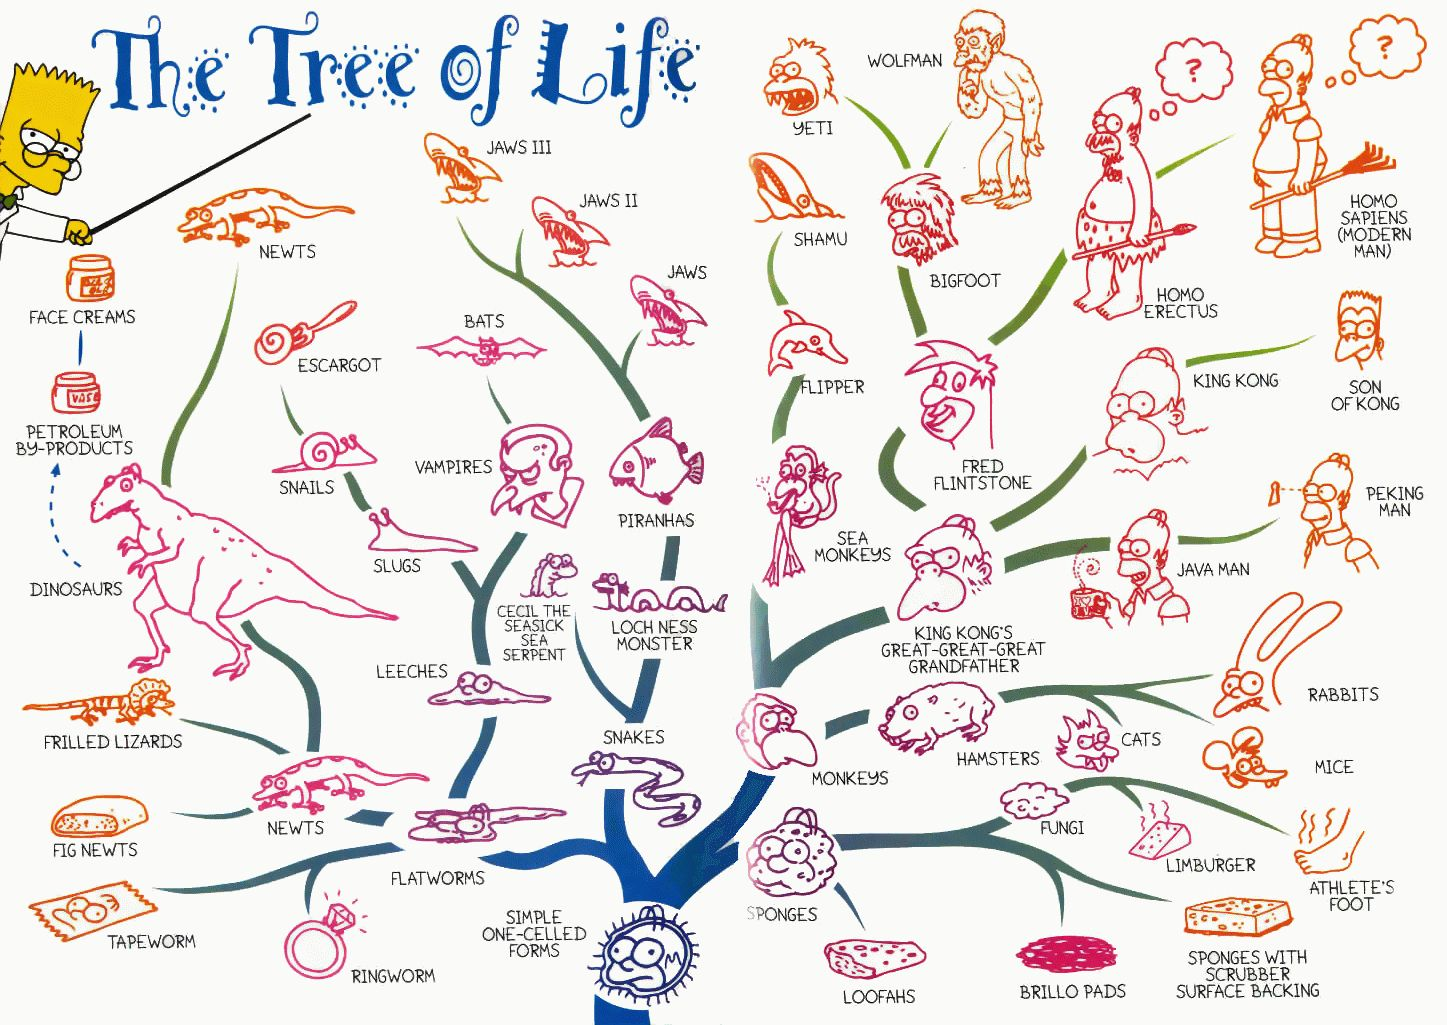 Tree Of Life Evolution Of Life According To Bart Simpson